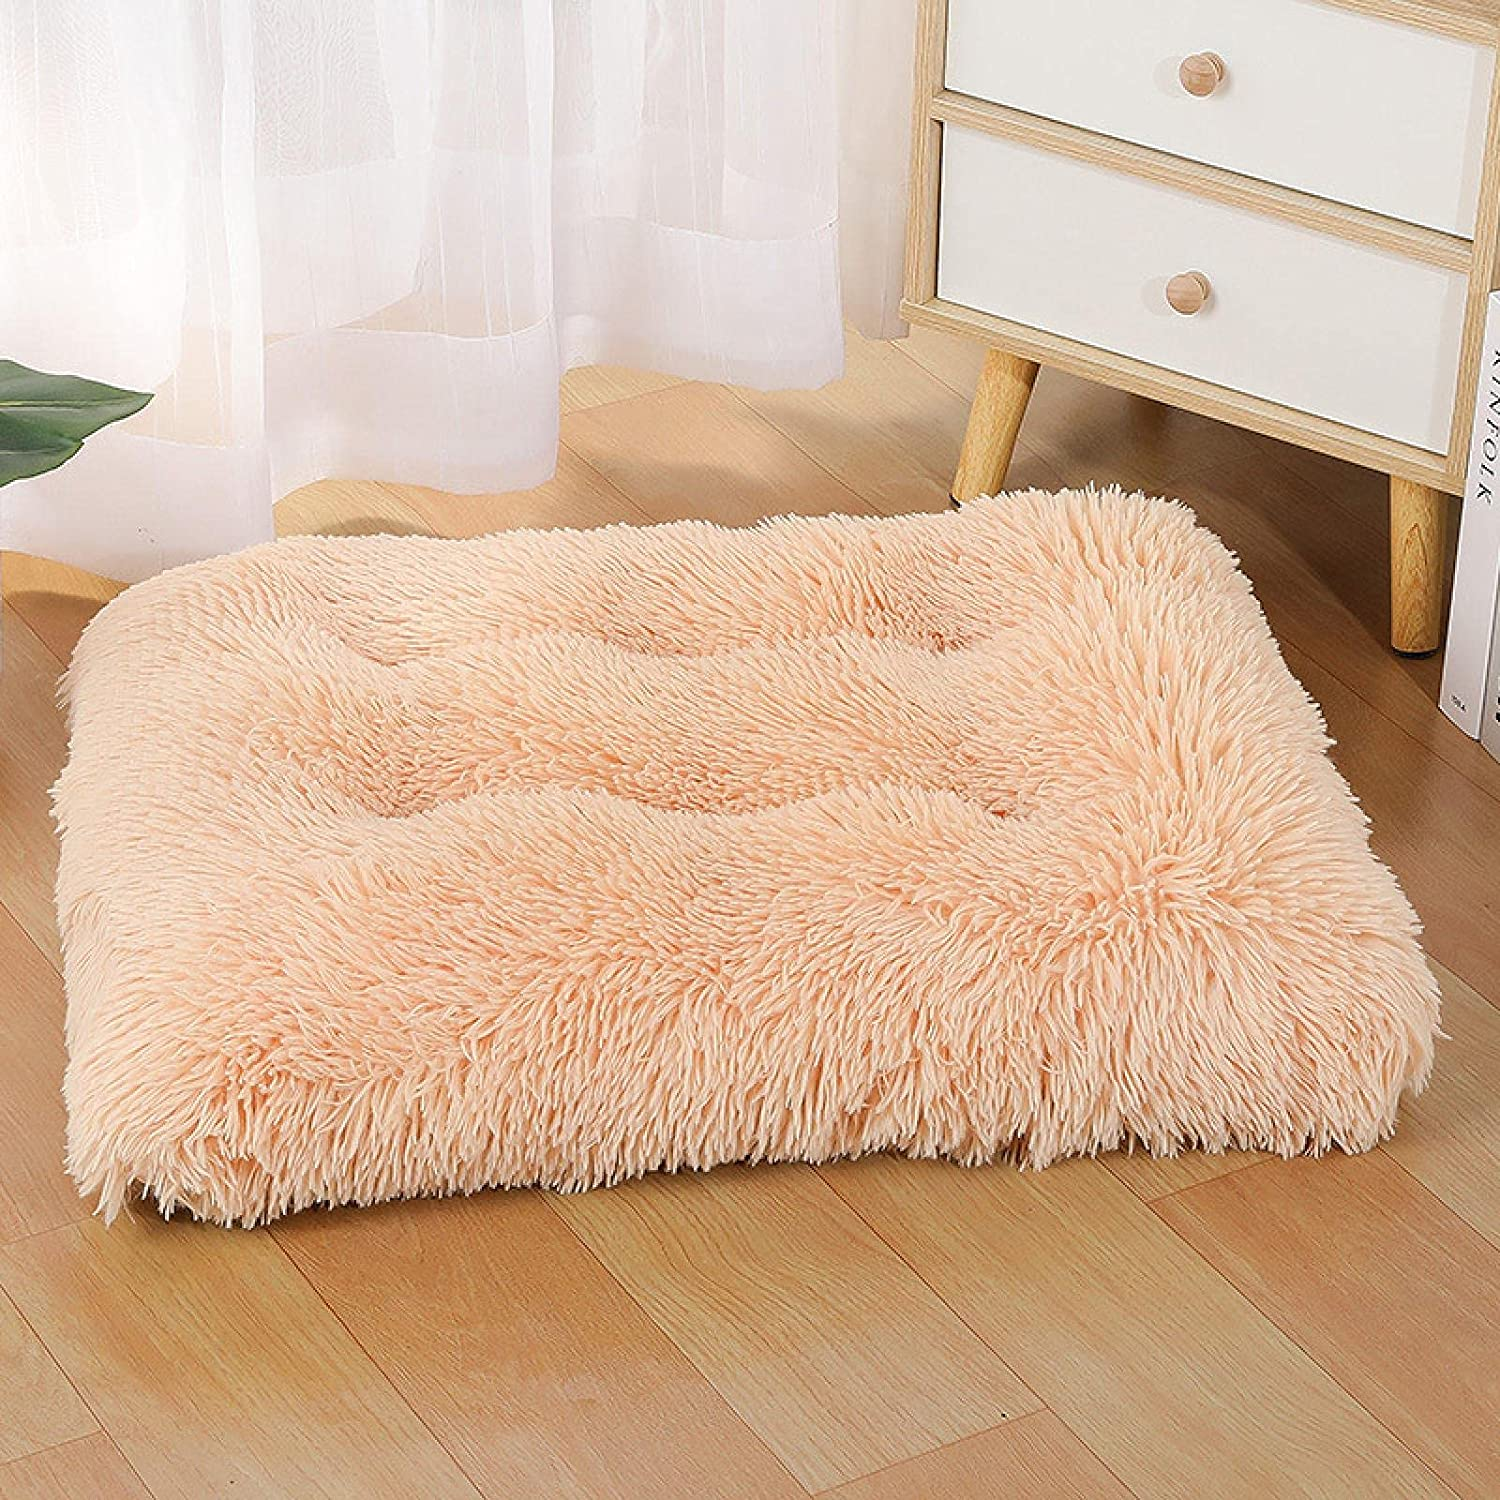 Square Special price for a limited time Cat Bed Cats Dog Mat sold out DogSleeping Ne Puppy Winter Warm